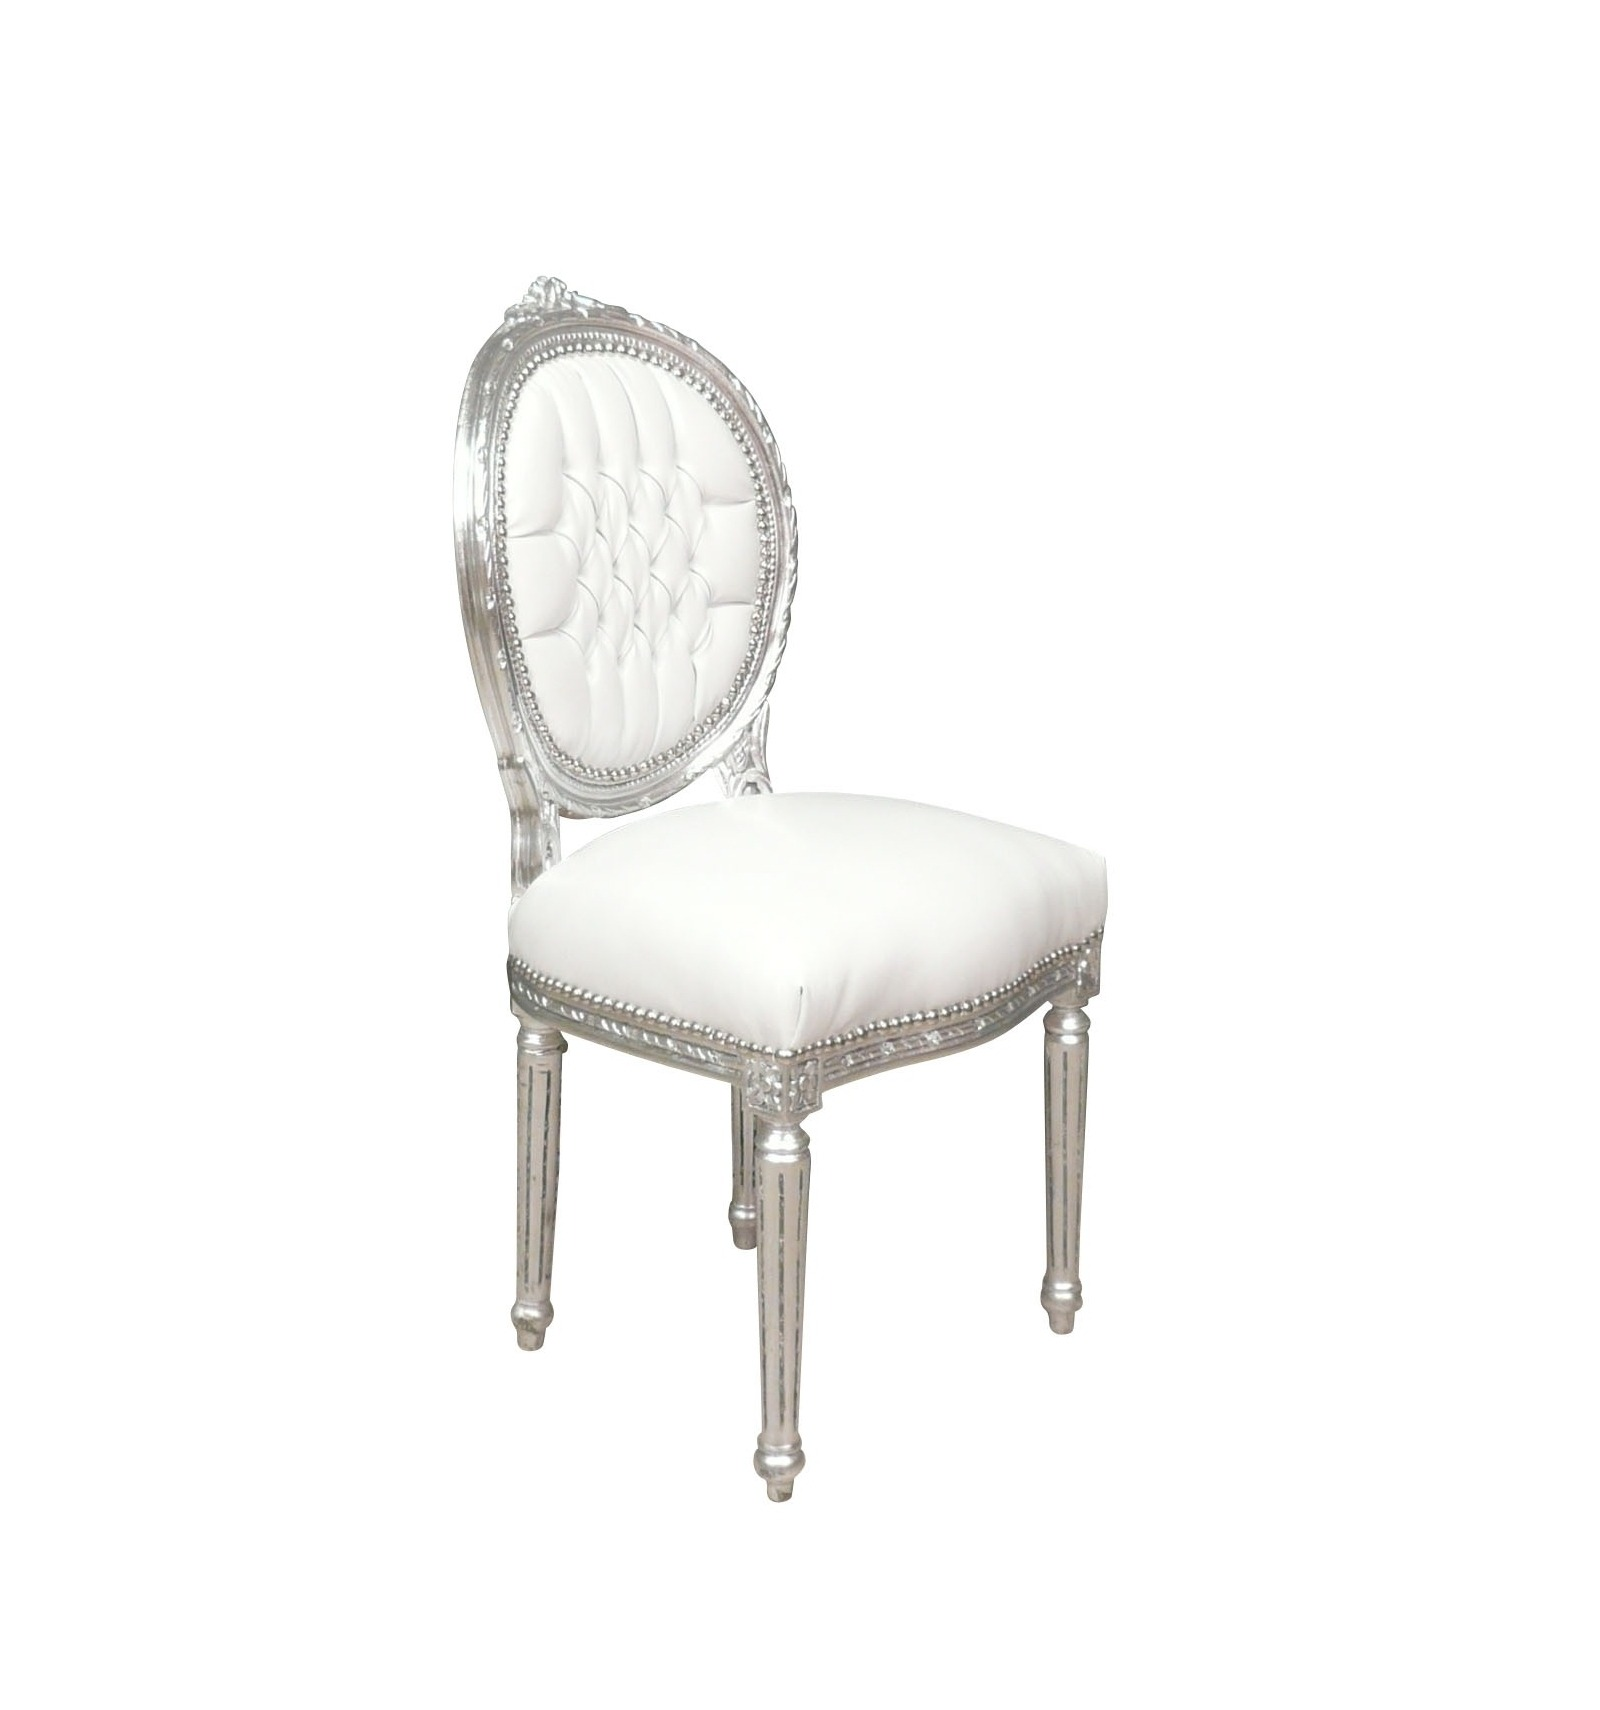 Chaise louis xvi blanche et argent pas ch re for Chaise blanche